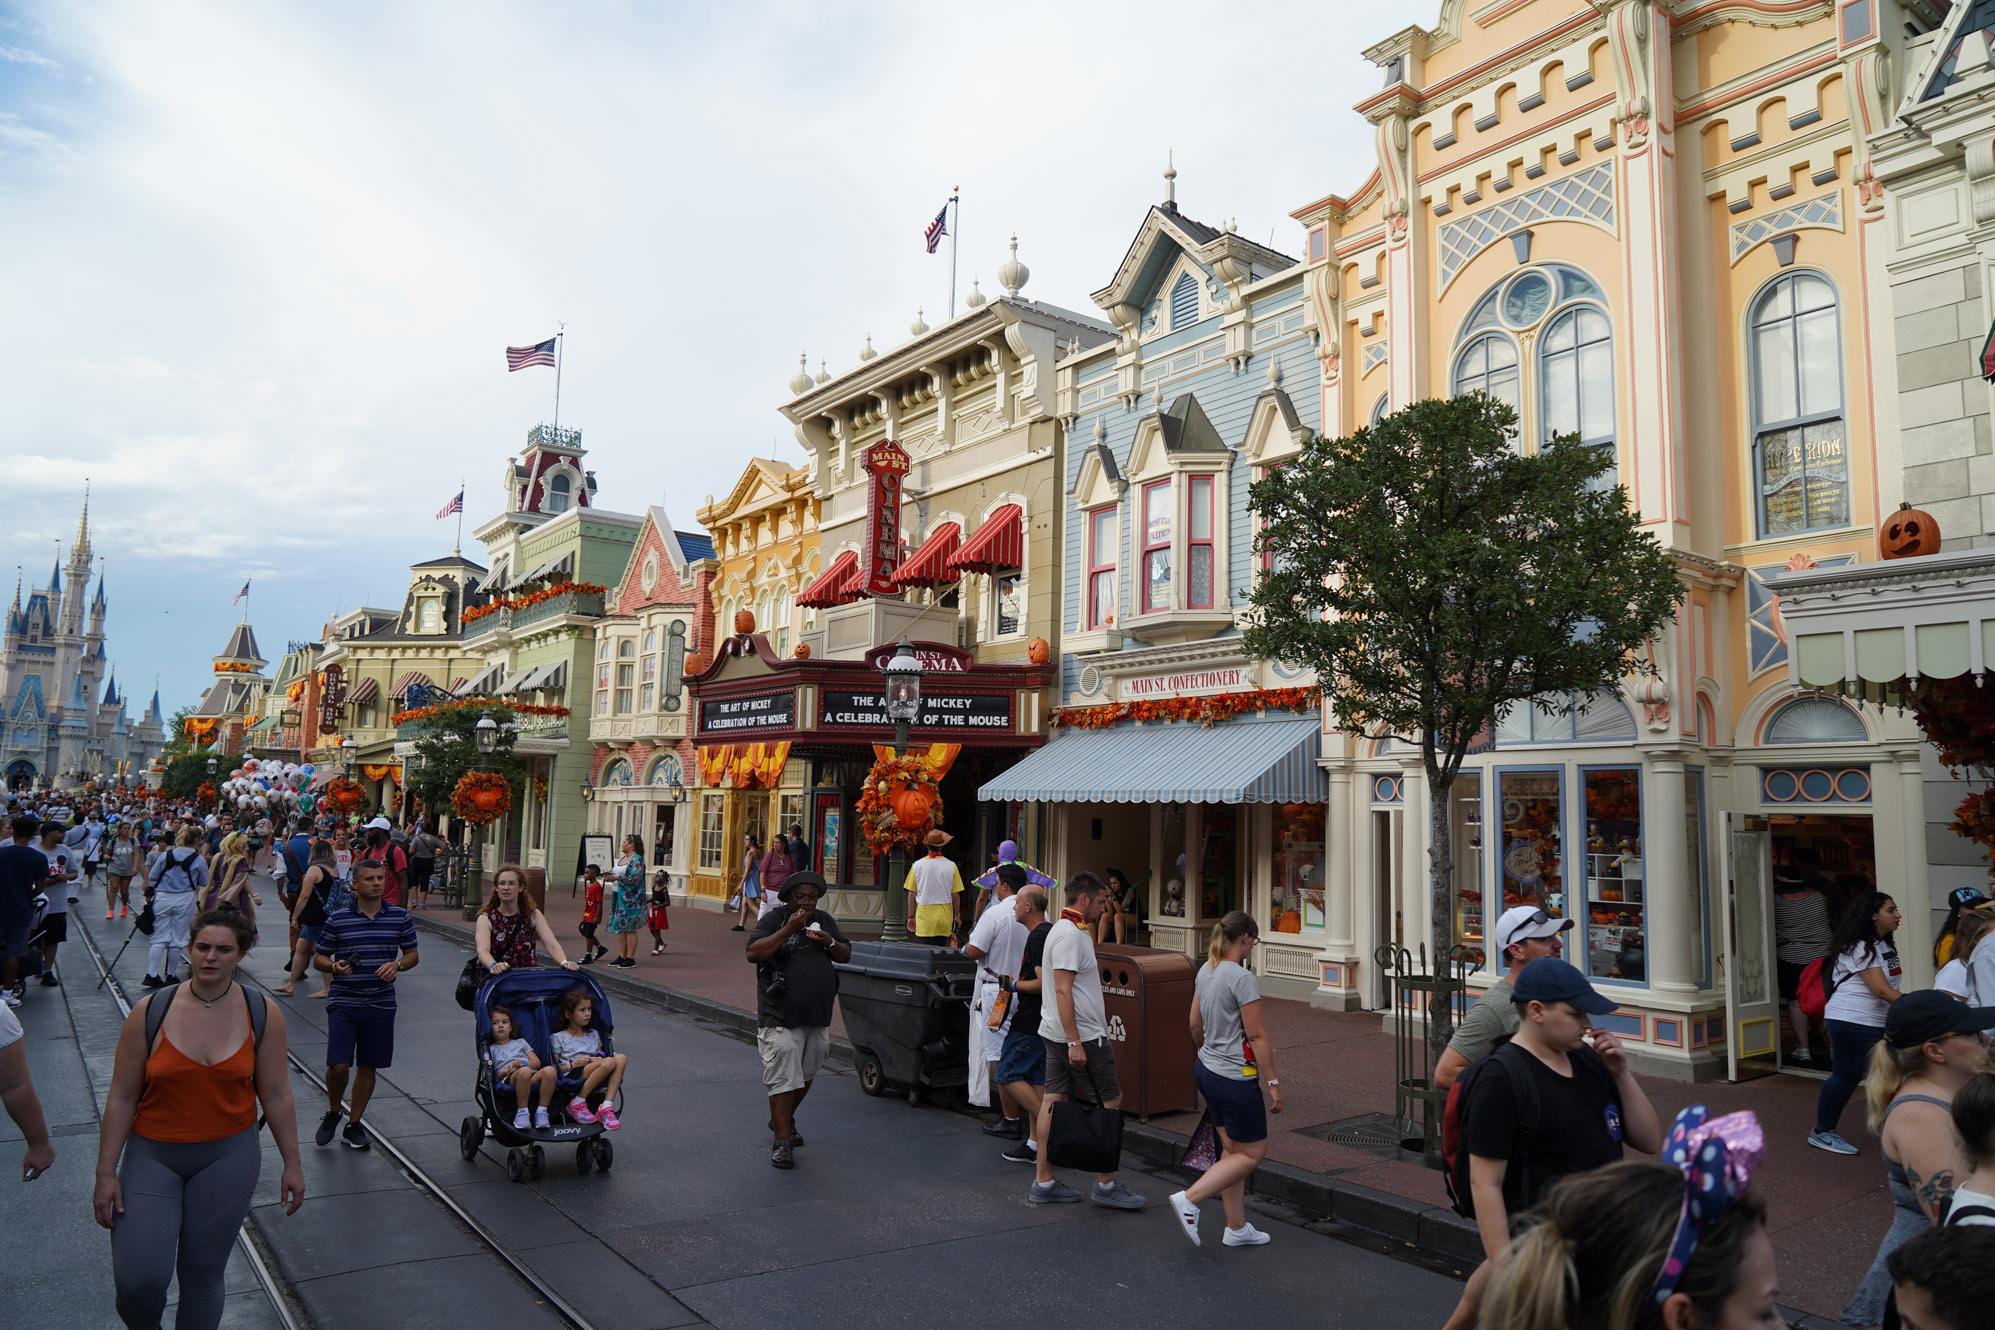 [%Disney World Map [2021 Maps: Resorts, Theme Parks, Water|List Of Rides At Disney World Printable 2021|List Of Rides At Disney World Printable 2021%]